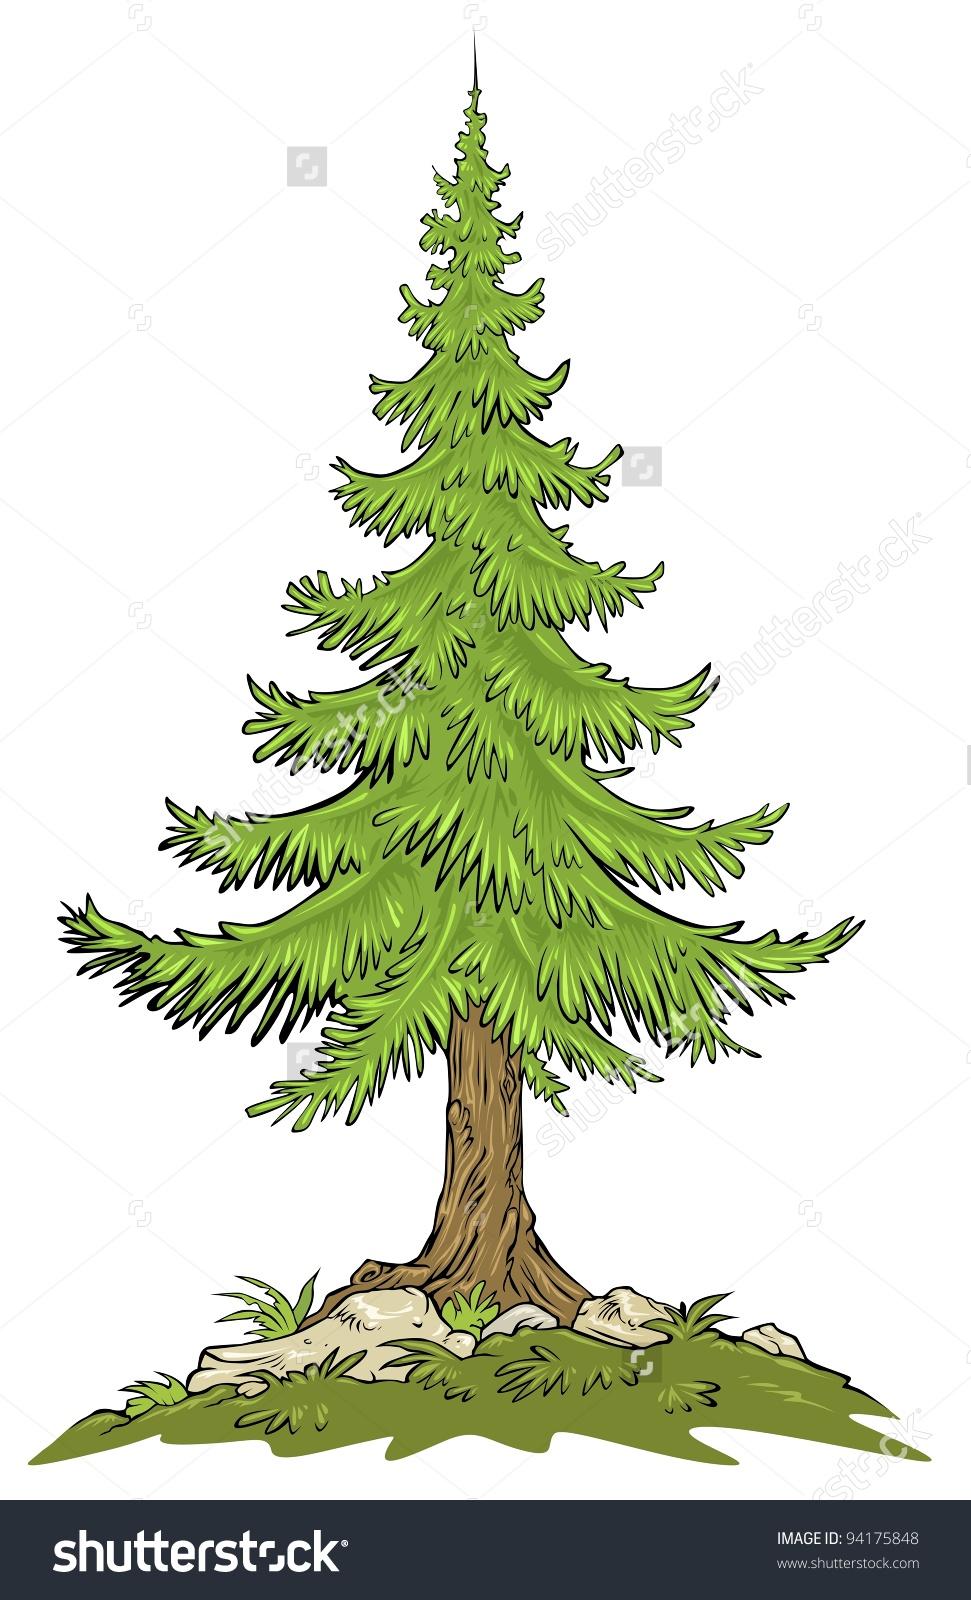 Fir Tree clipart #9, Download drawings